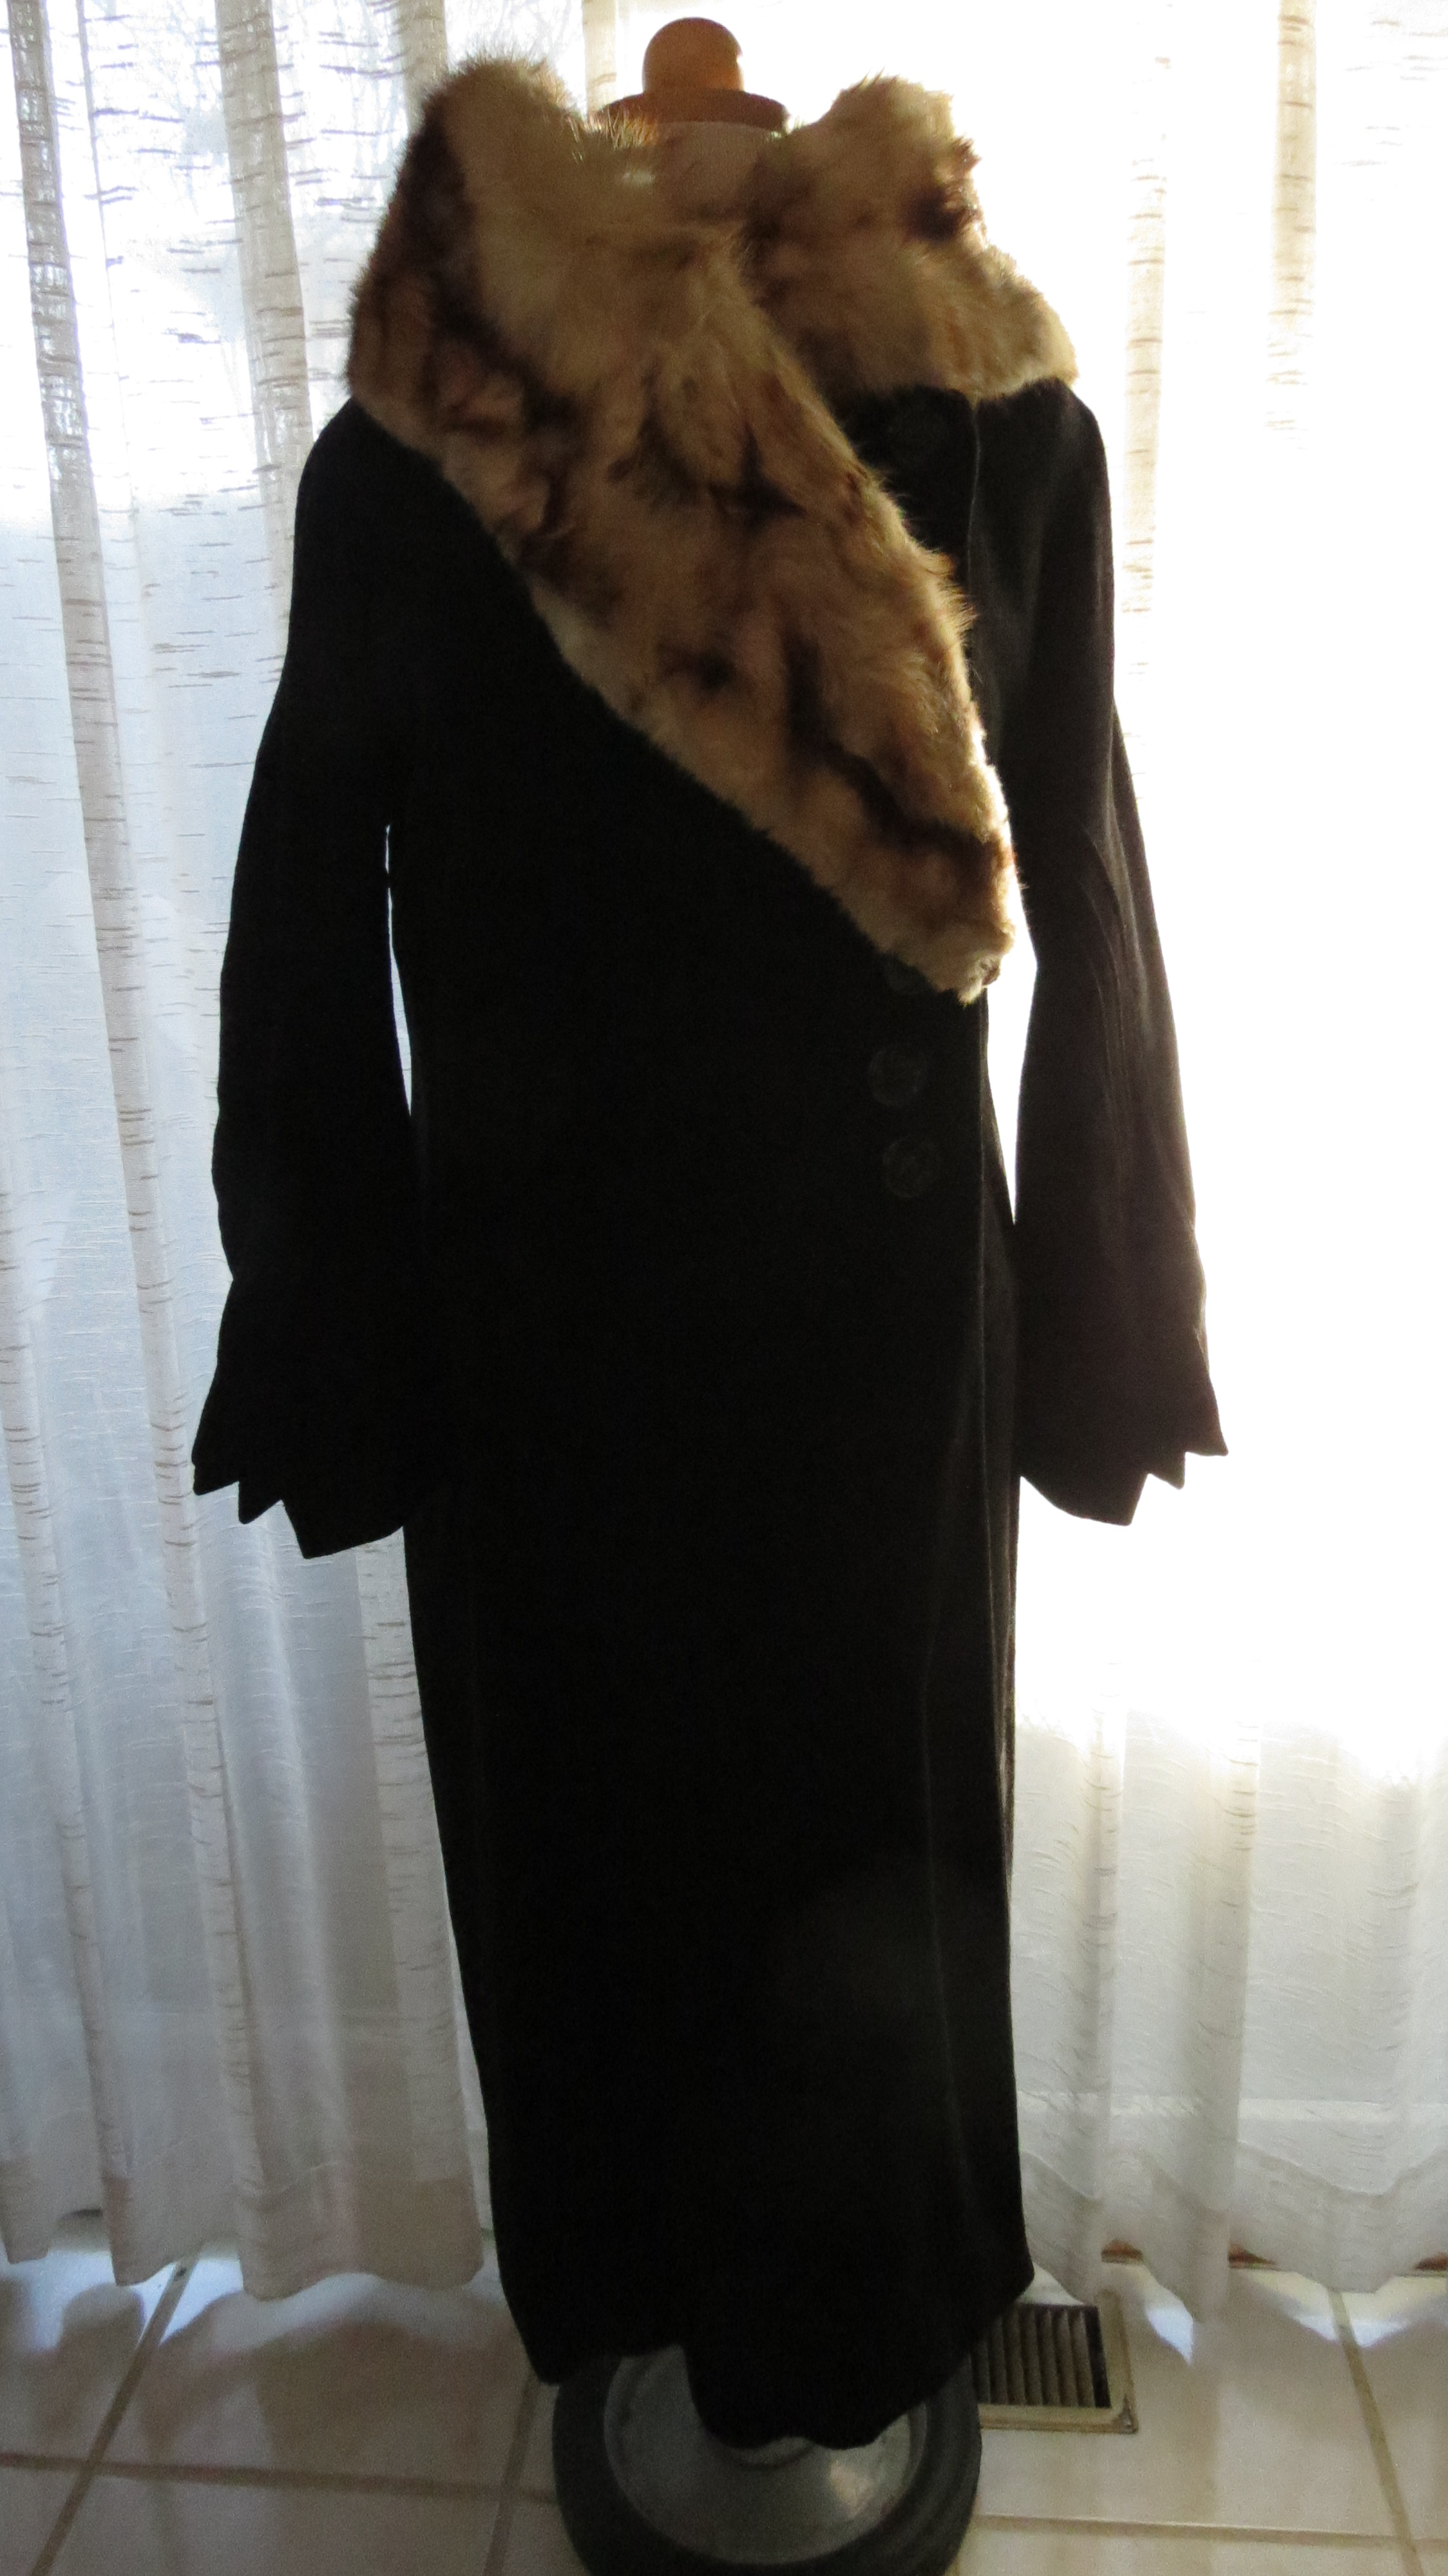 ANOTHER MEGA-FUN SURPRISE FIND! TRUE VINTAGE 1920'S WINTER COAT